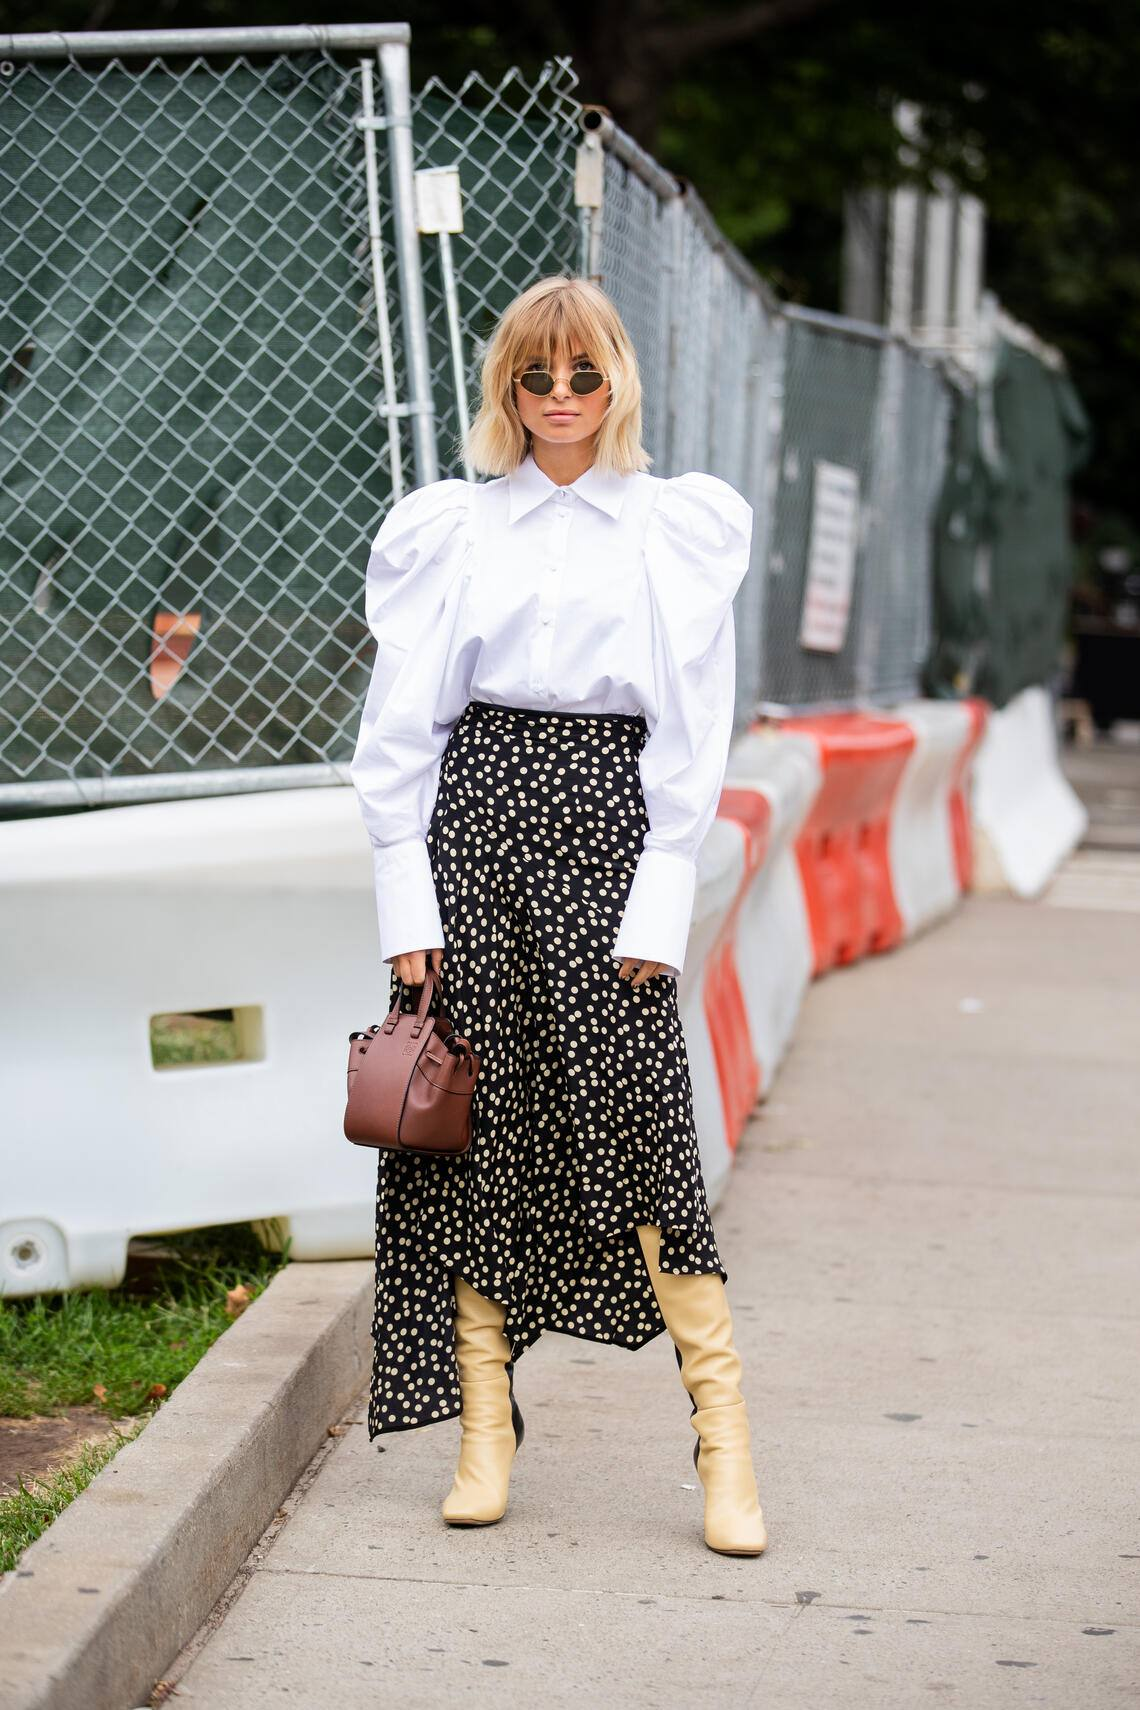 NEW YORK, NEW YORK - SEPTEMBER 08: Xenia Adonts is seen wearing white blouse, asymmetric skirt, boots, brown bag outside Tory Burch during New York Fashion Week September 2019 on September 08, 2019 in New York City. (Photo by Christian Vierig/Getty Images)